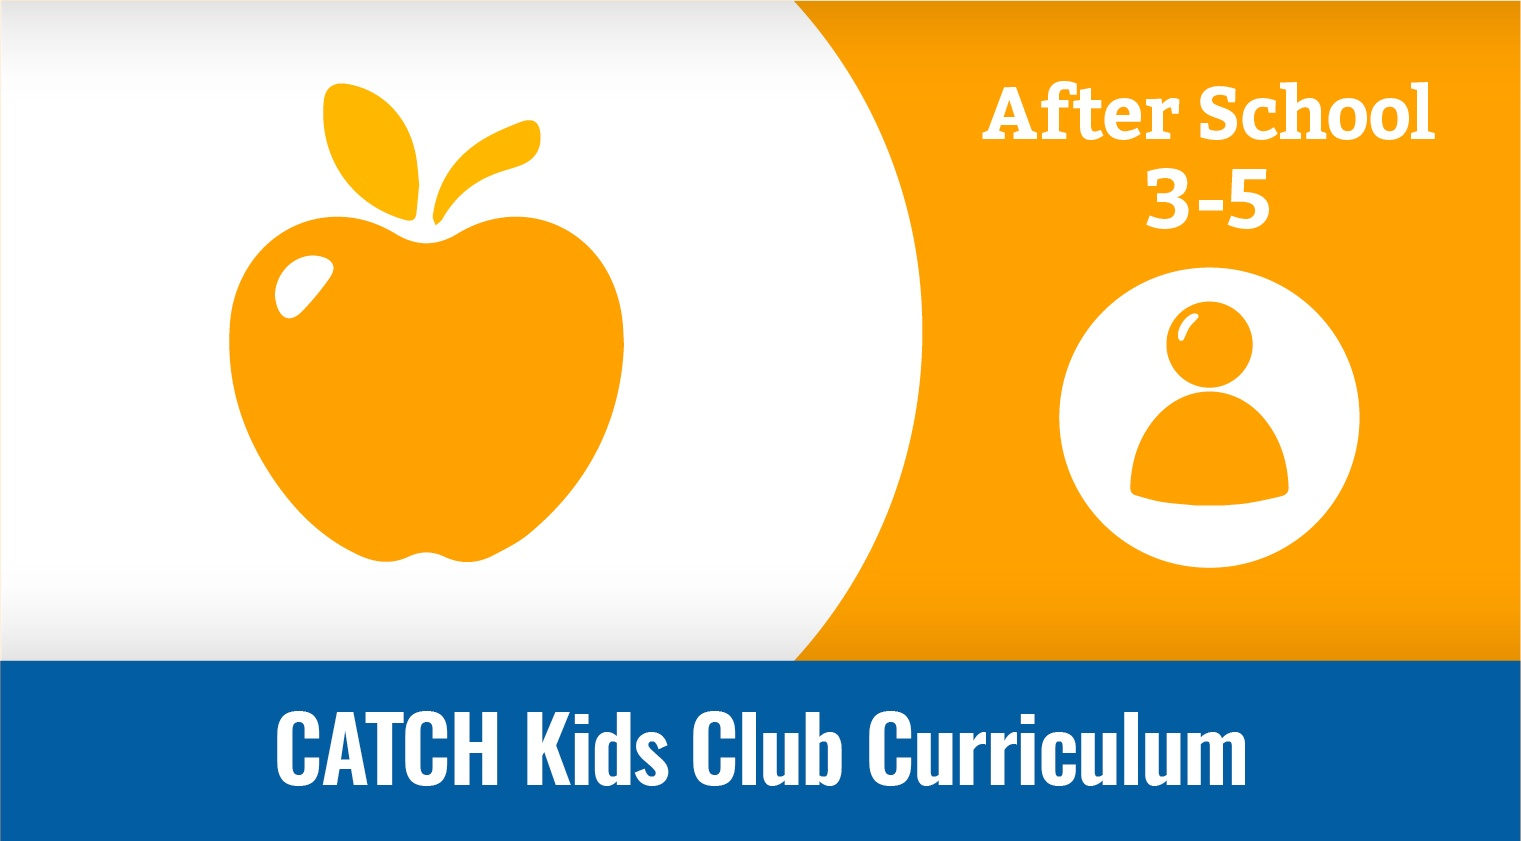 CATCH Kids Club 3-5 Curriculum